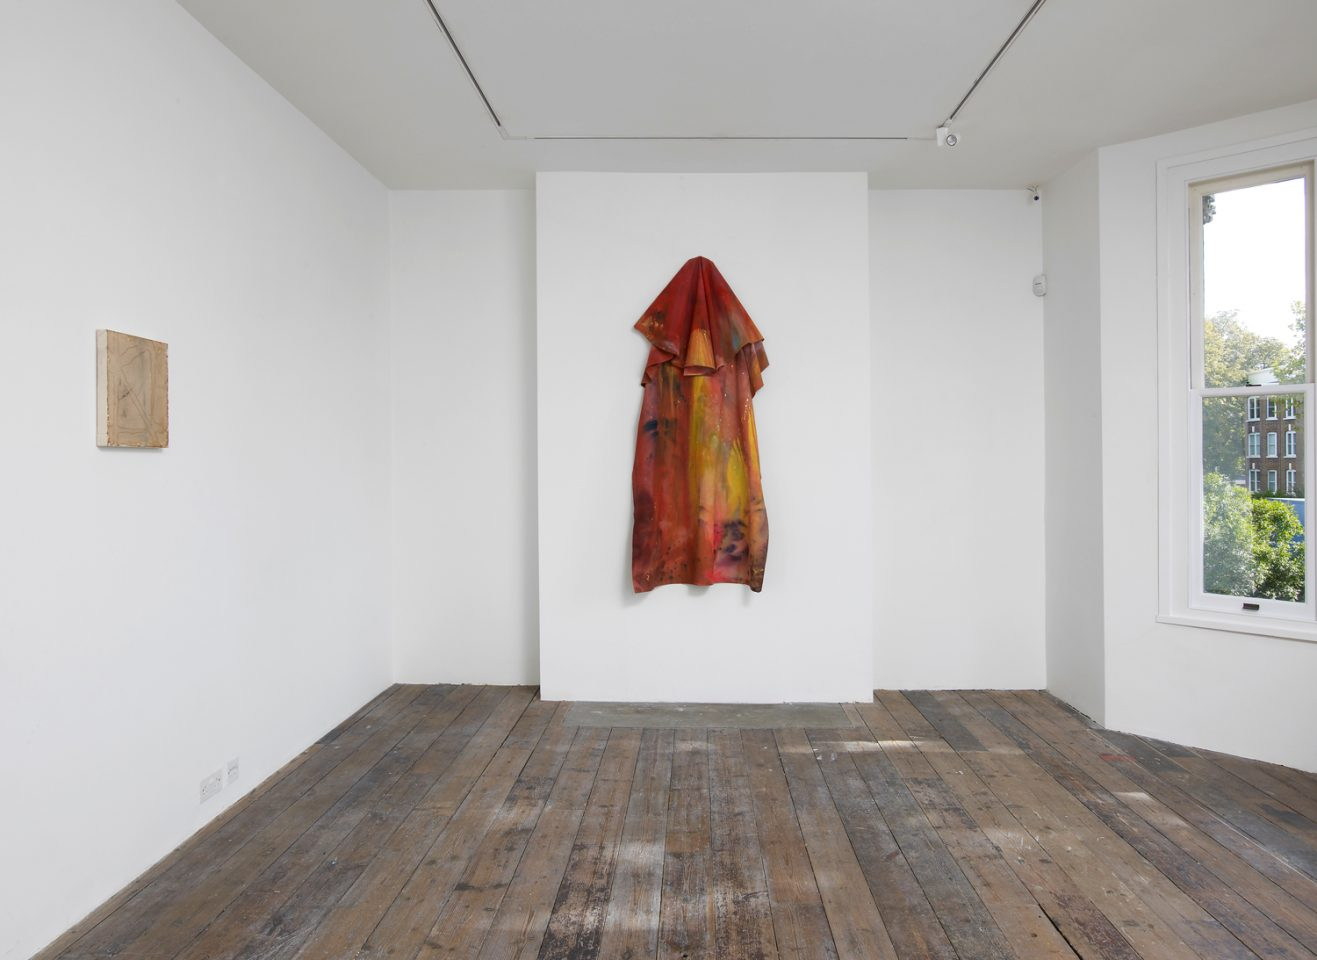 Installation view of Sam Gilliam's One Situation included in the 2012 exhibition Drip, Drape, Draft. Photo: Andy Keate